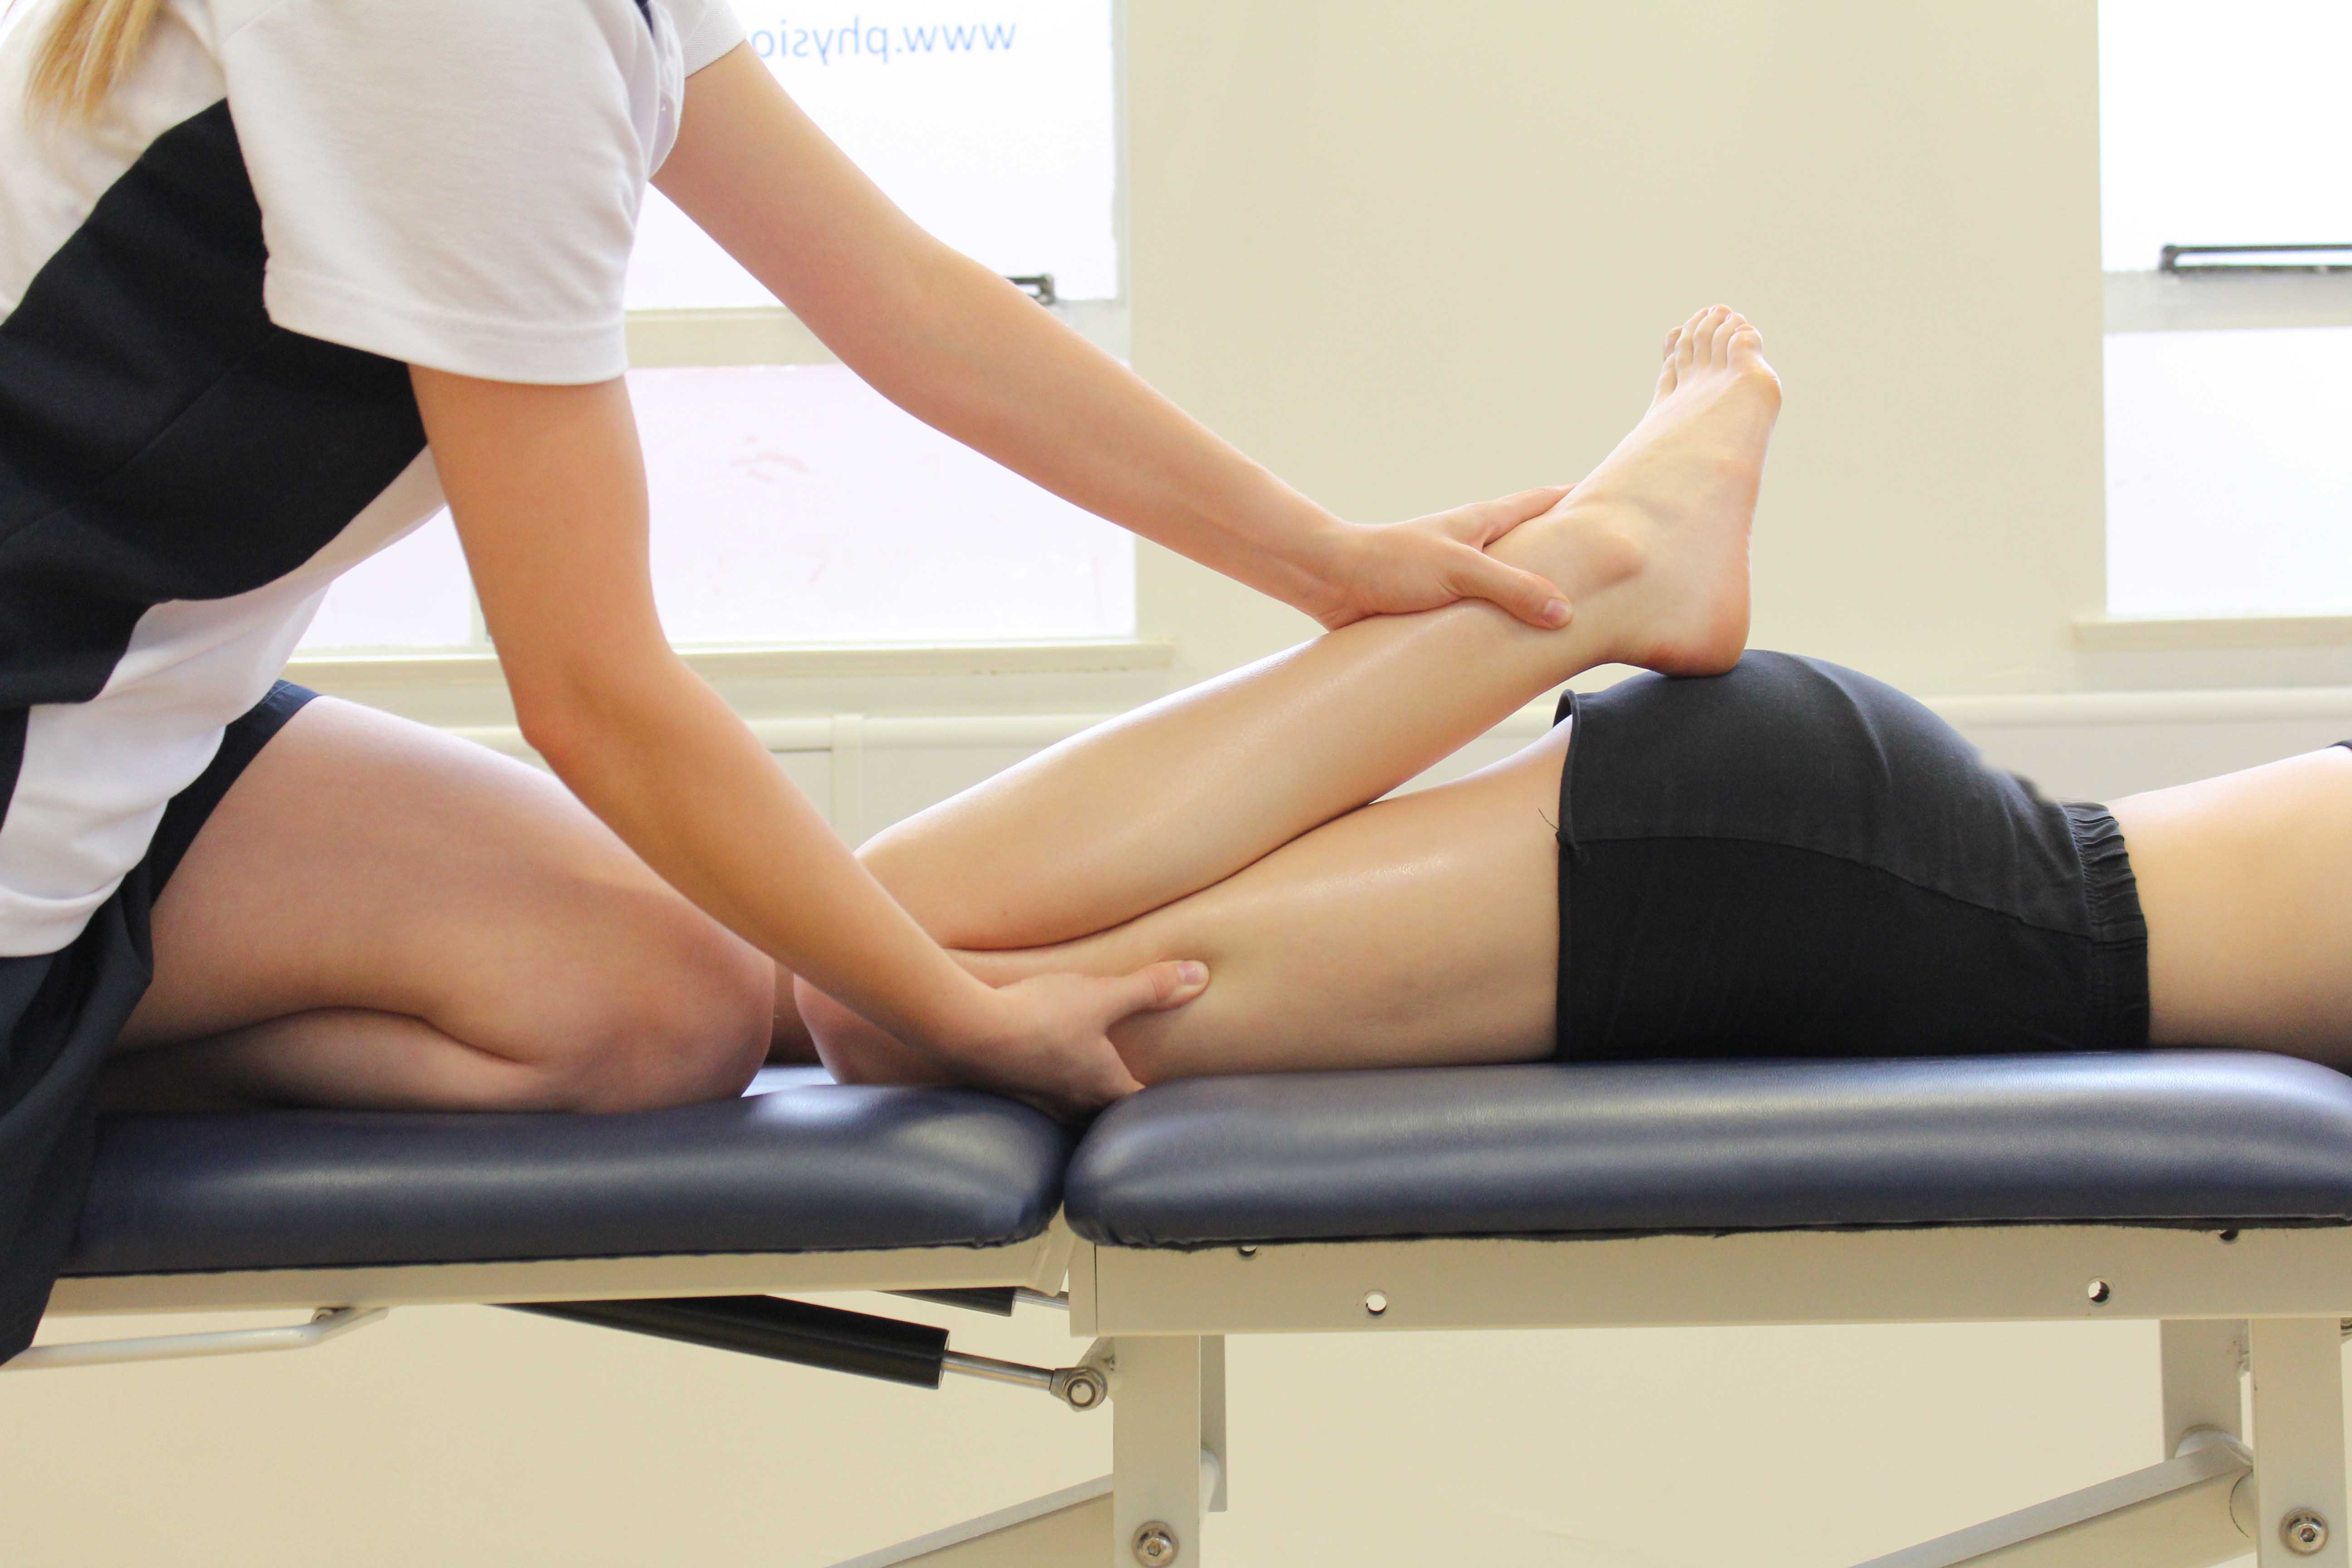 Quadricep and hip fexor stretch passively applied by a physiotherapist